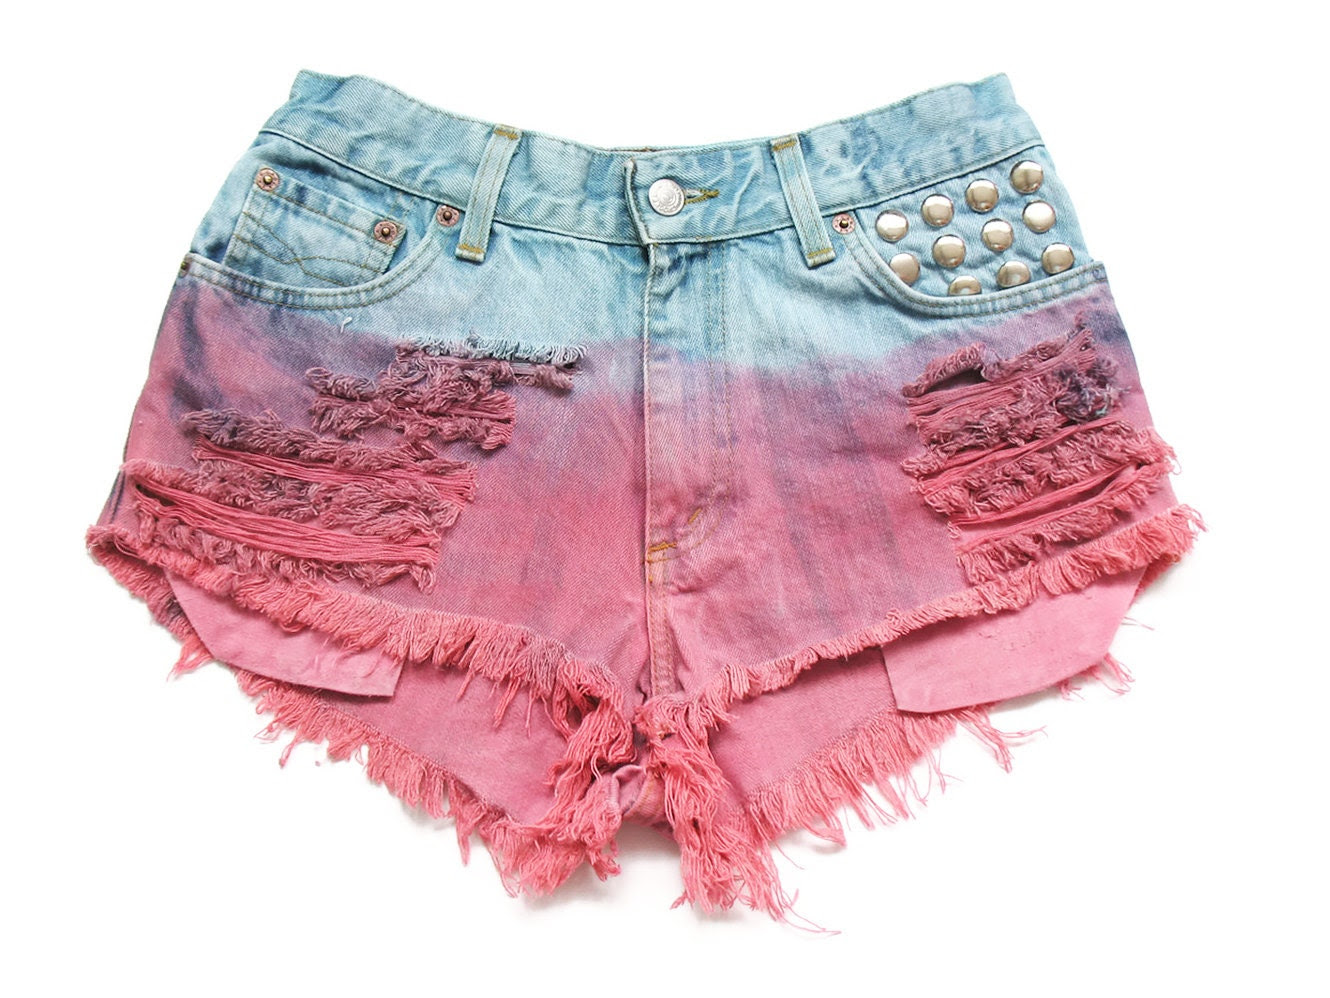 Studded alta cintura shorts jeans S